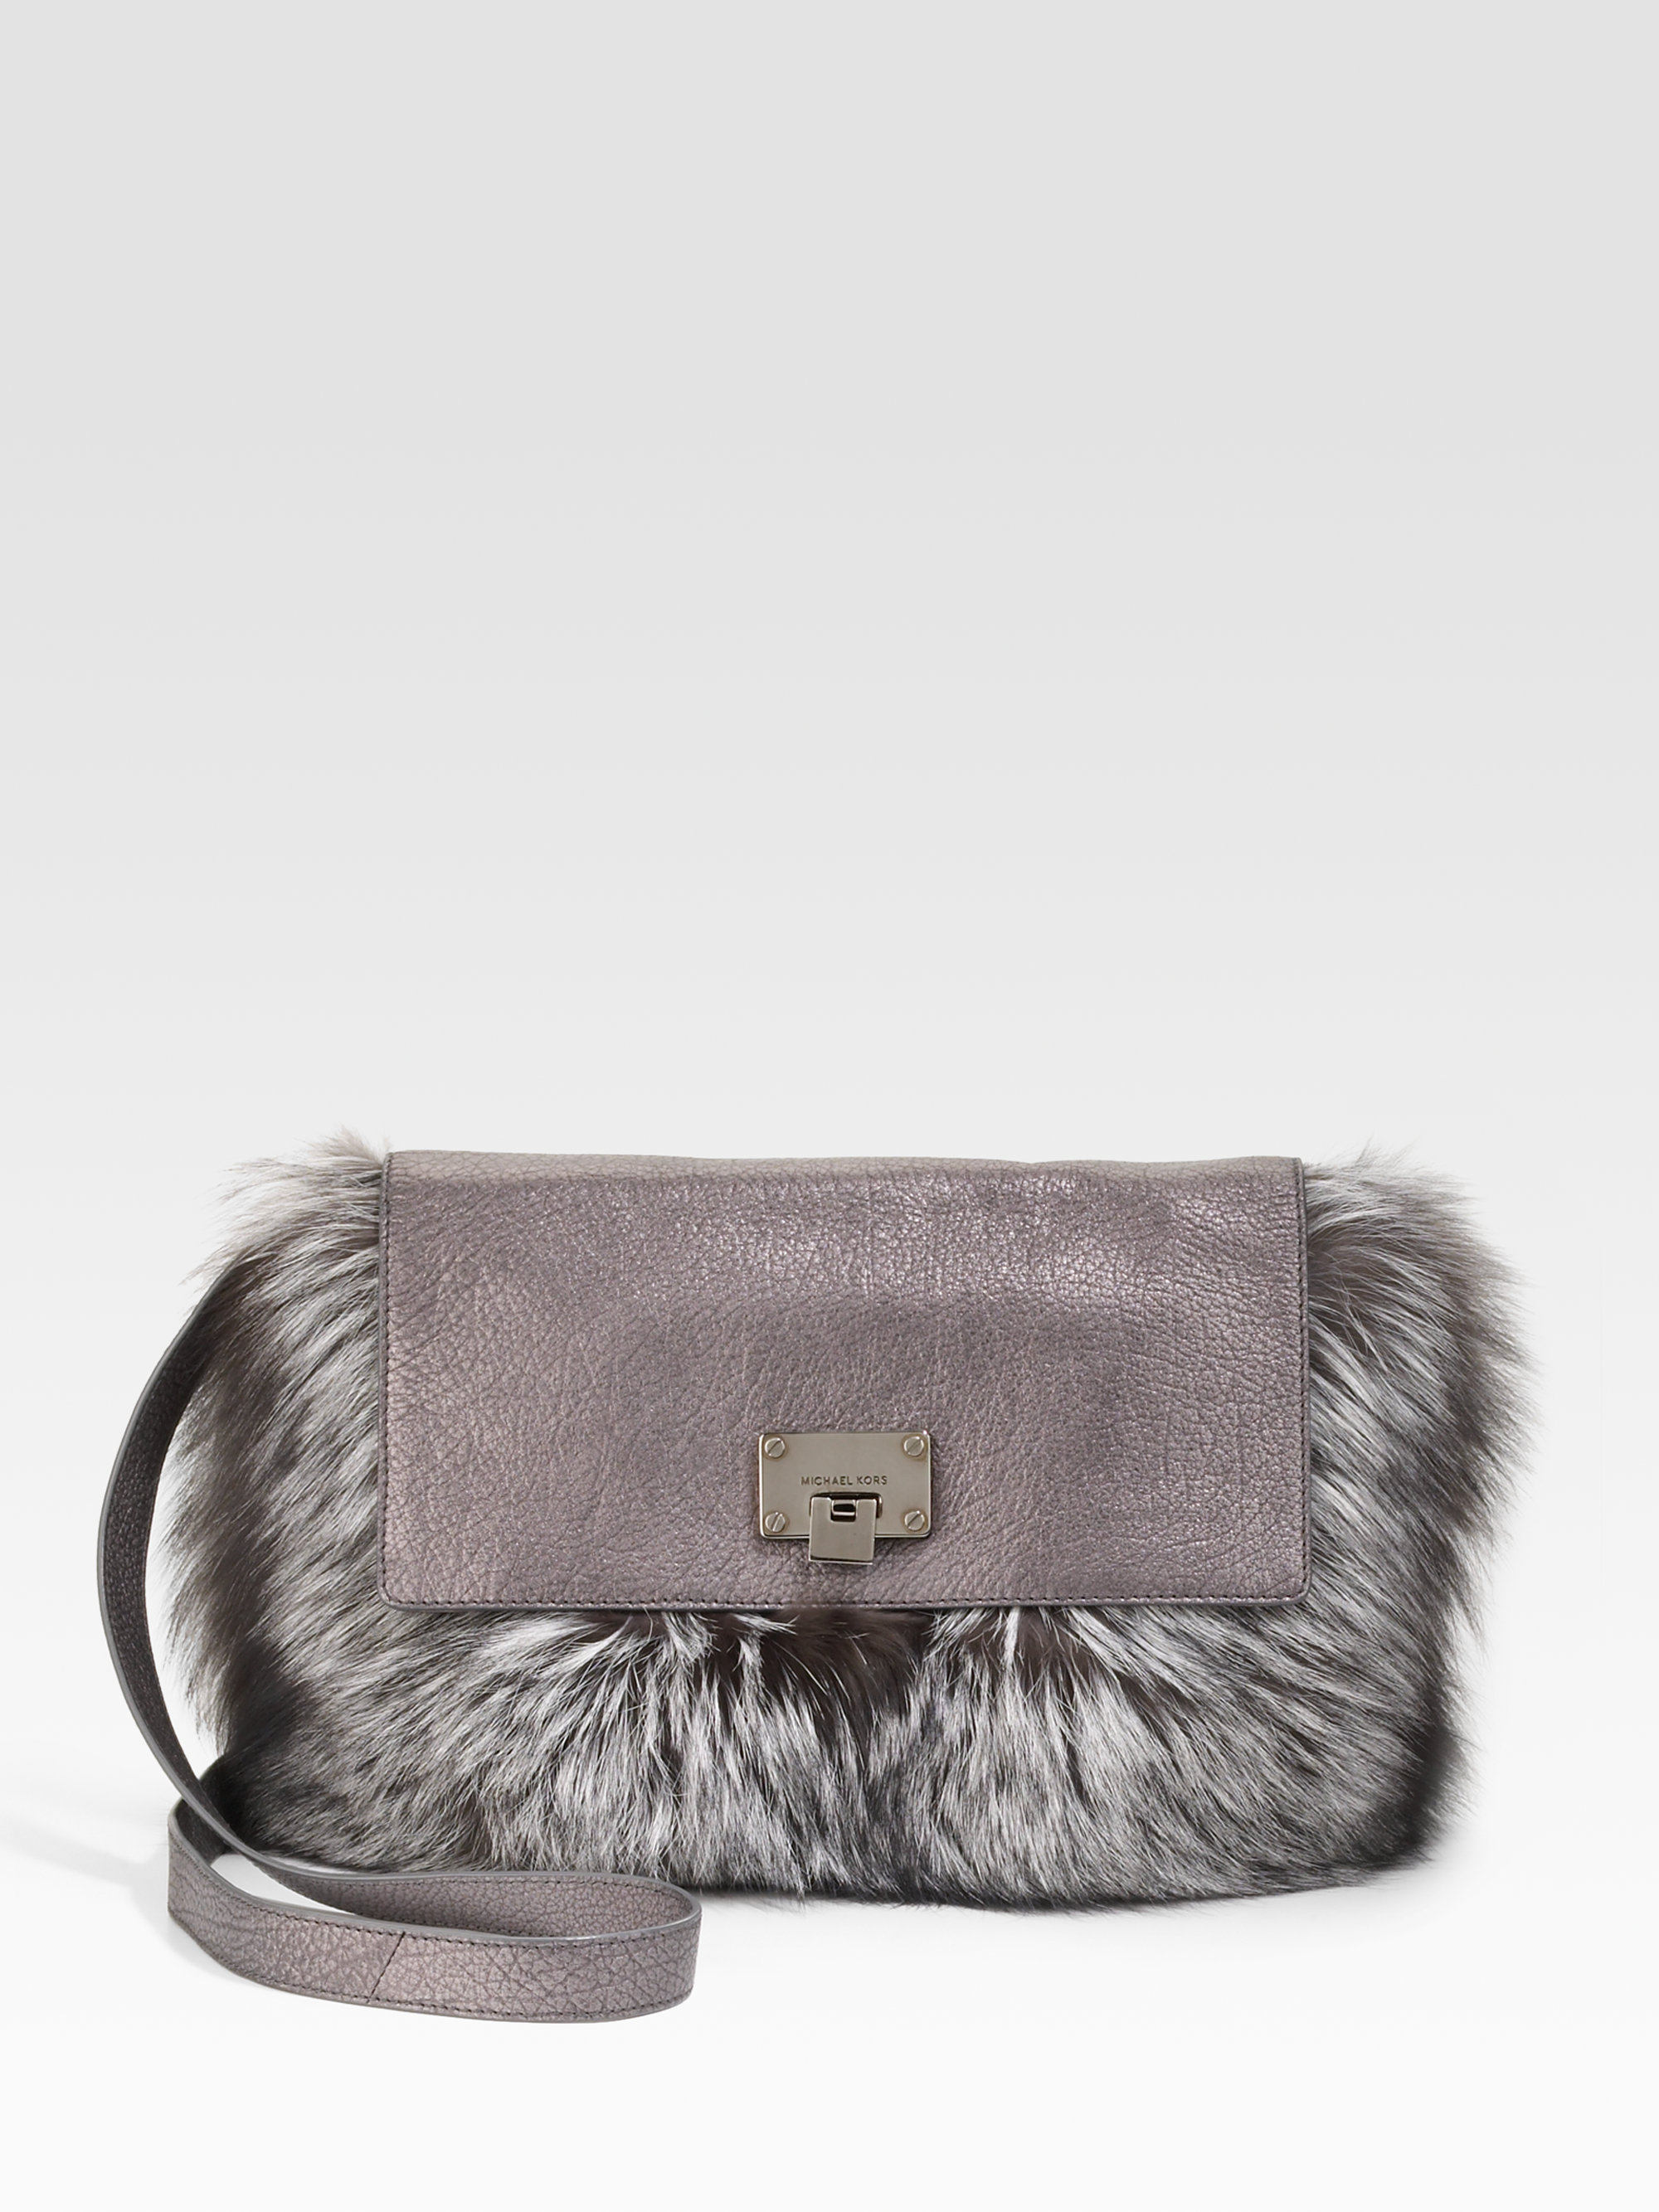 Michael Kors Fur Shoulder Bag 20